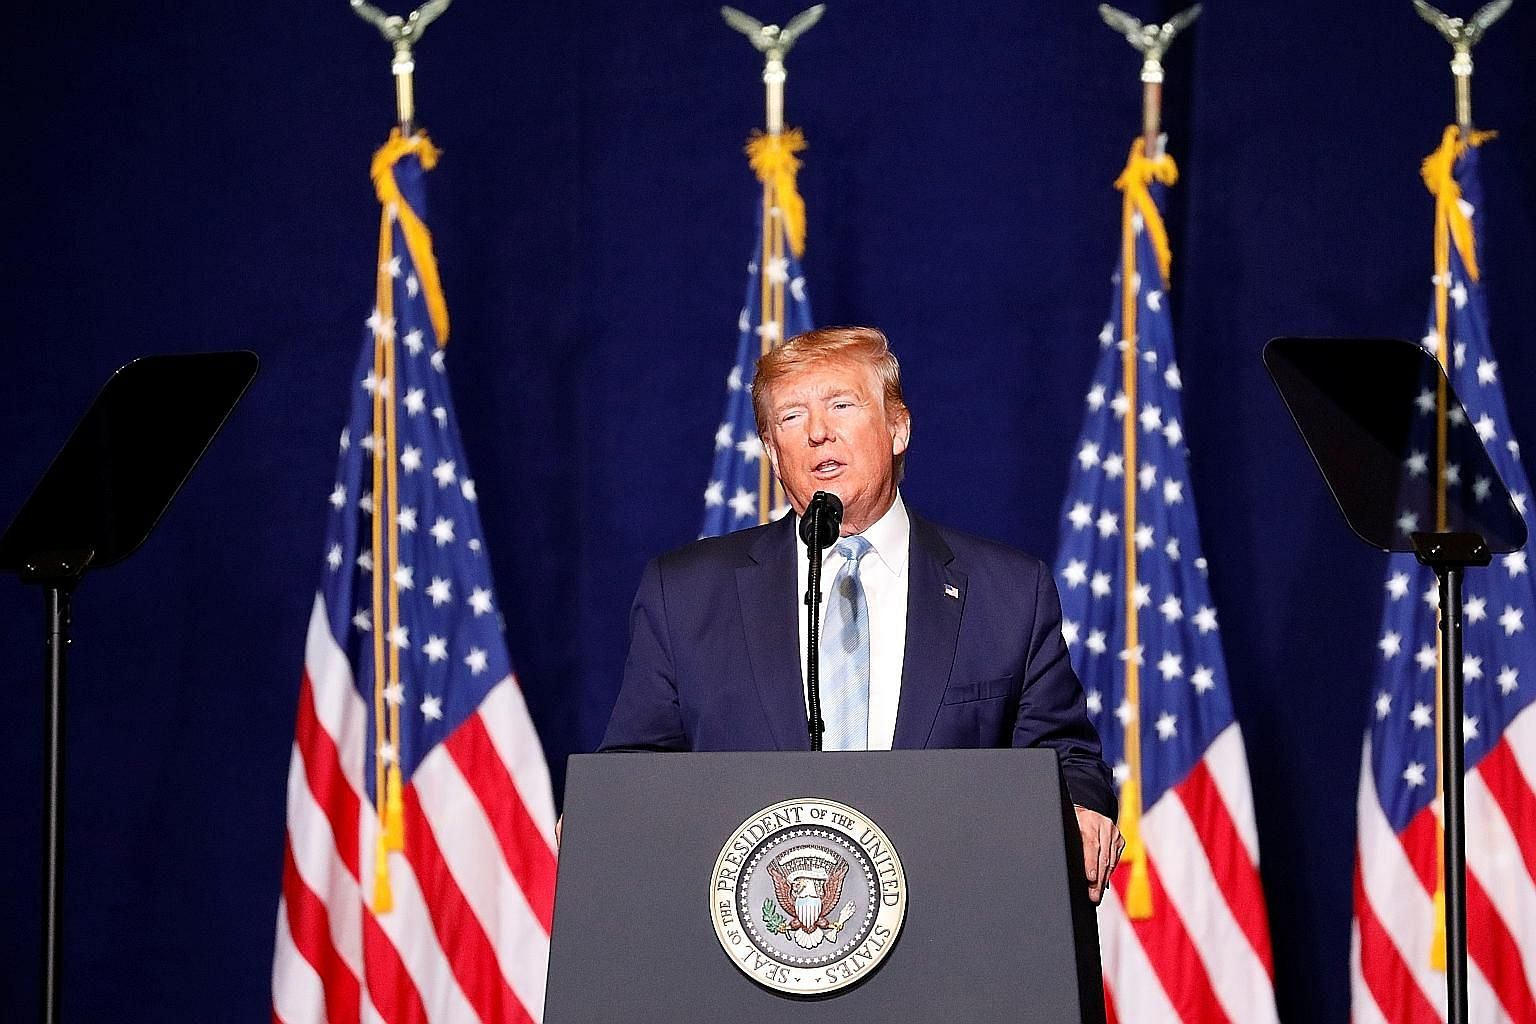 President Donald Trump was more popular among people on the political right, with confidence in his leadership and support for his policies increasing in several countries and among right-wing voters.